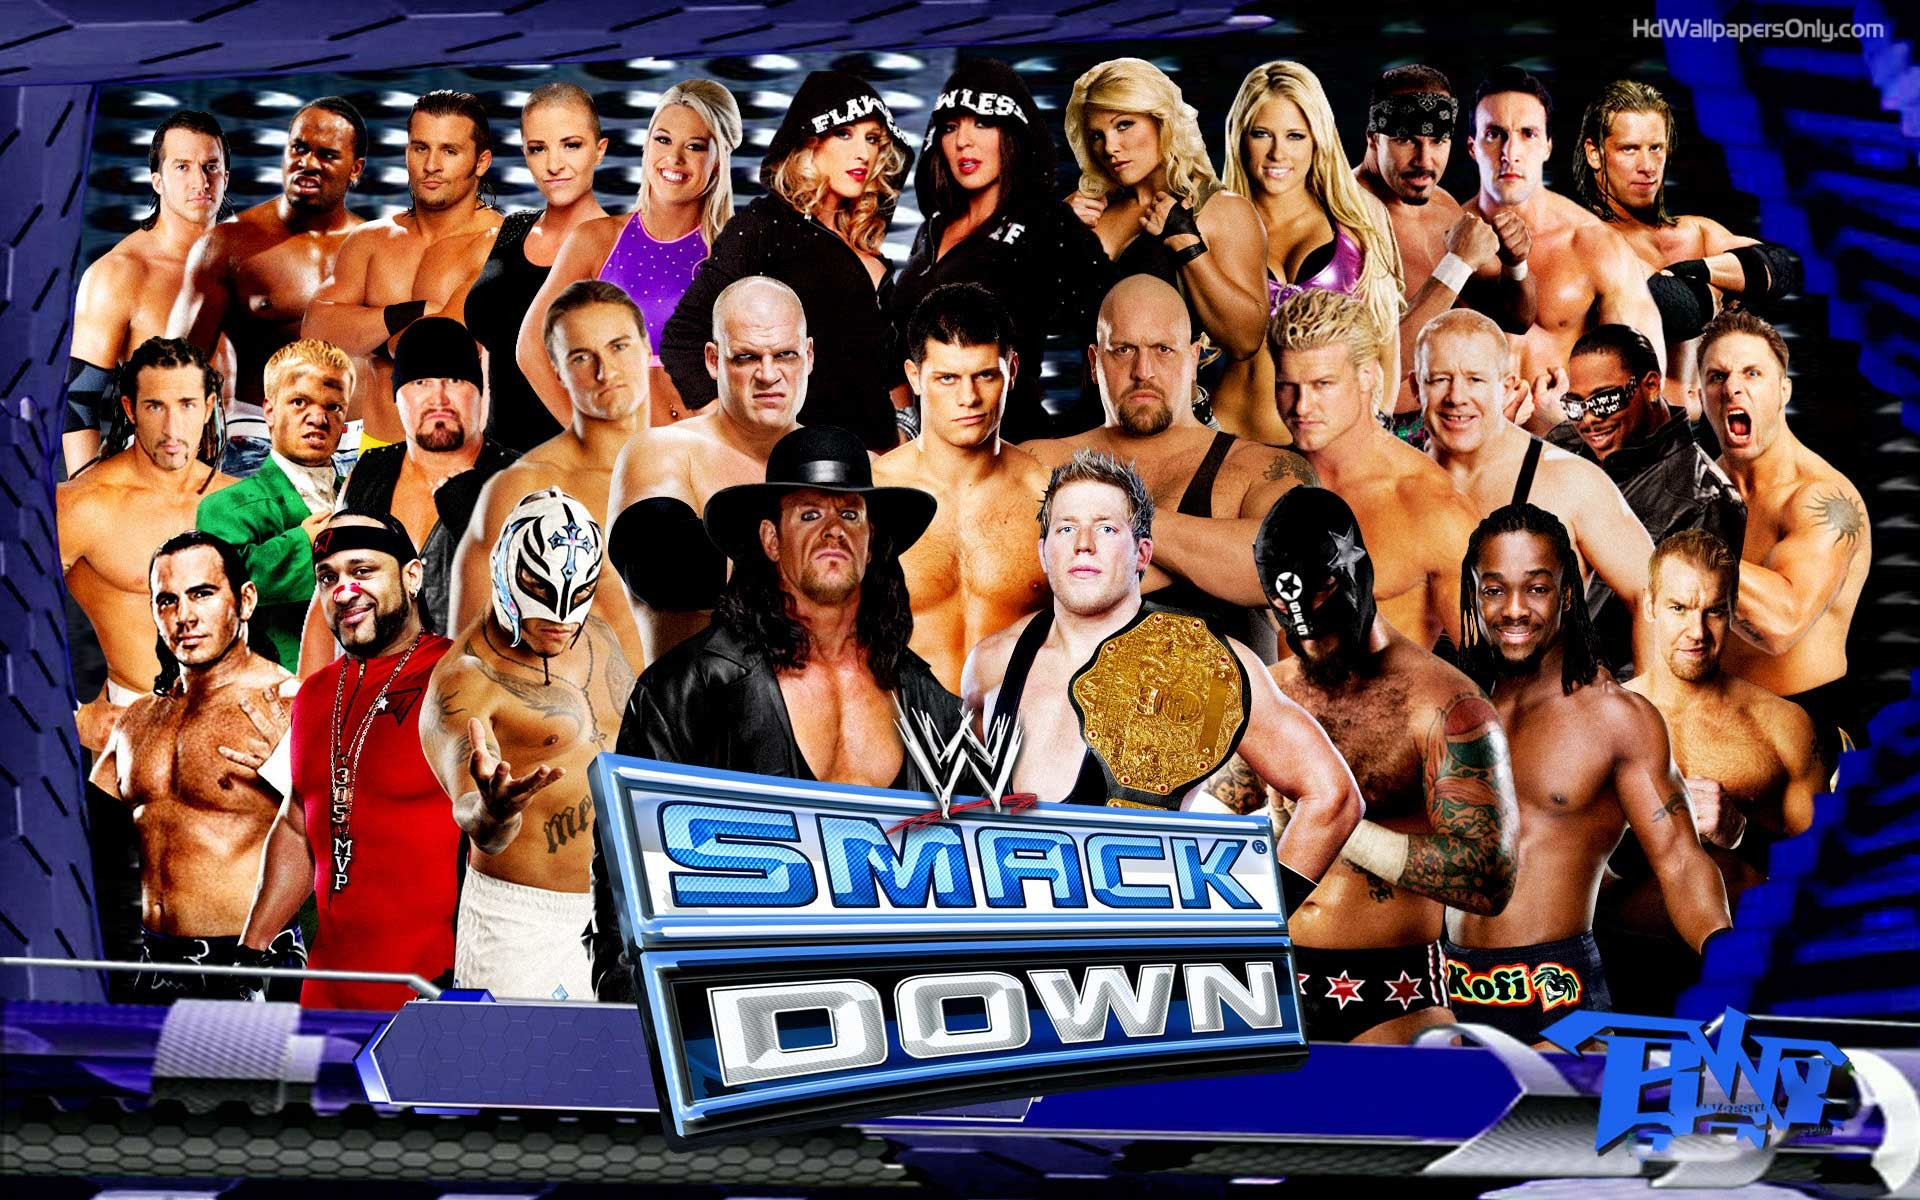 WWE Best hd wallpapers 2015   Hd Wallpapers ,Pictures, images